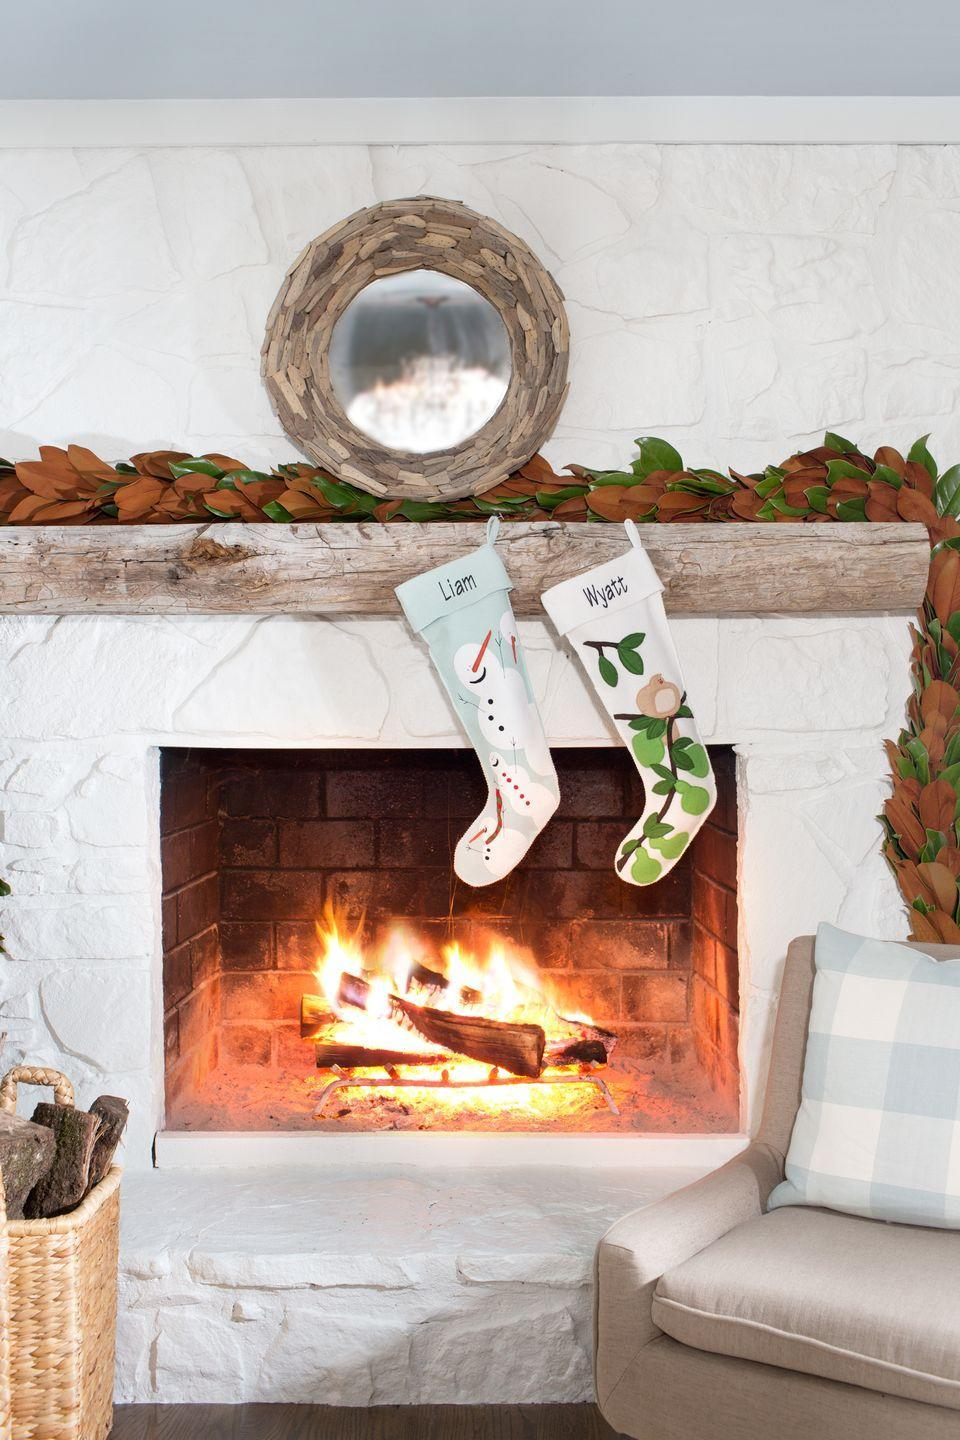 """<p>Personalized stockings add a fun element to an all-white fireplace. </p><p><a class=""""link rapid-noclick-resp"""" href=""""https://www.amazon.com/s/ref=nb_sb_noss?url=search-alias%3Daps&field-keywords=felt+christmas+garland&rh=i%3Aaps%2Ck%3Afelt+christmas+garland&tag=syn-yahoo-20&ascsubtag=%5Bartid%7C10050.g.1407%5Bsrc%7Cyahoo-us"""" rel=""""nofollow noopener"""" target=""""_blank"""" data-ylk=""""slk:SHOP FELT GARLAND"""">SHOP FELT GARLAND</a></p>"""